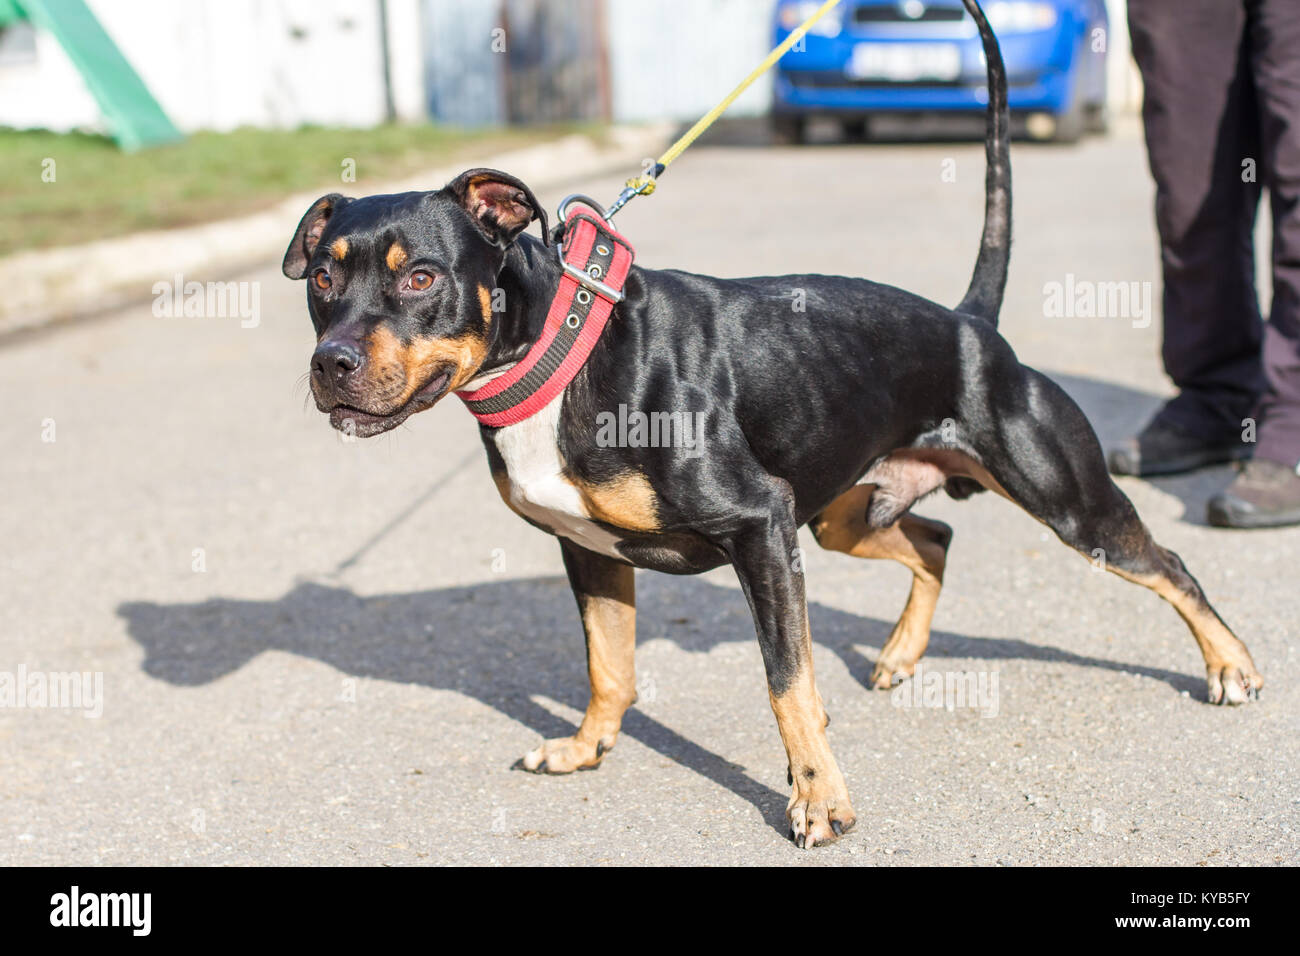 Black and tan colored friendly American Pit Bull Terrier pulling on the leash - Stock Image